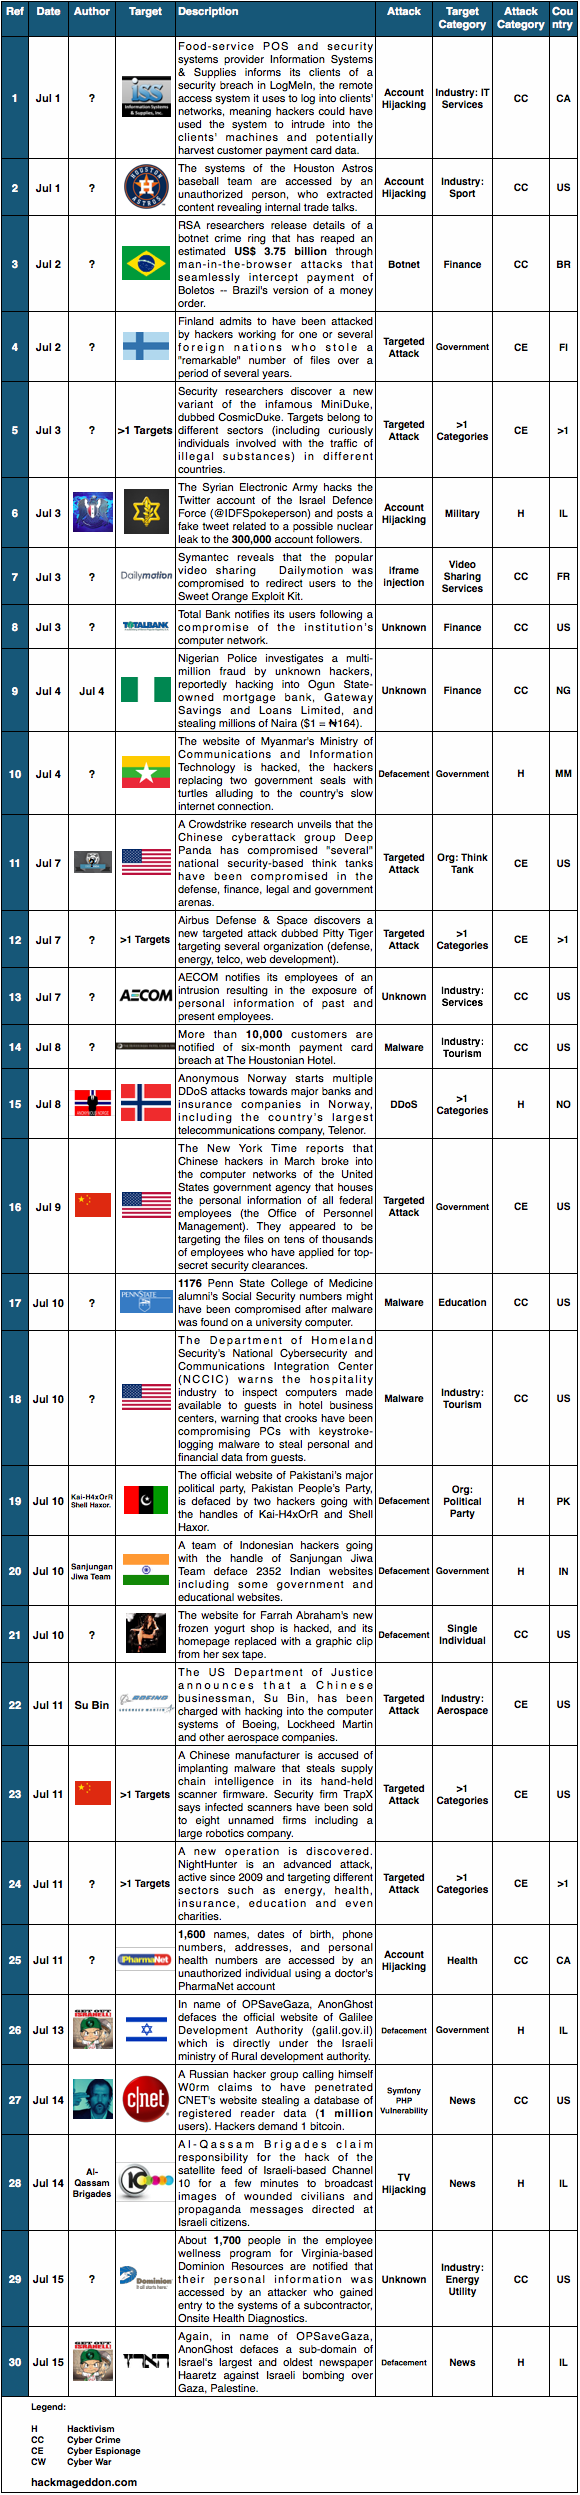 1-15 July 2014 Cyber Attacks Timeline